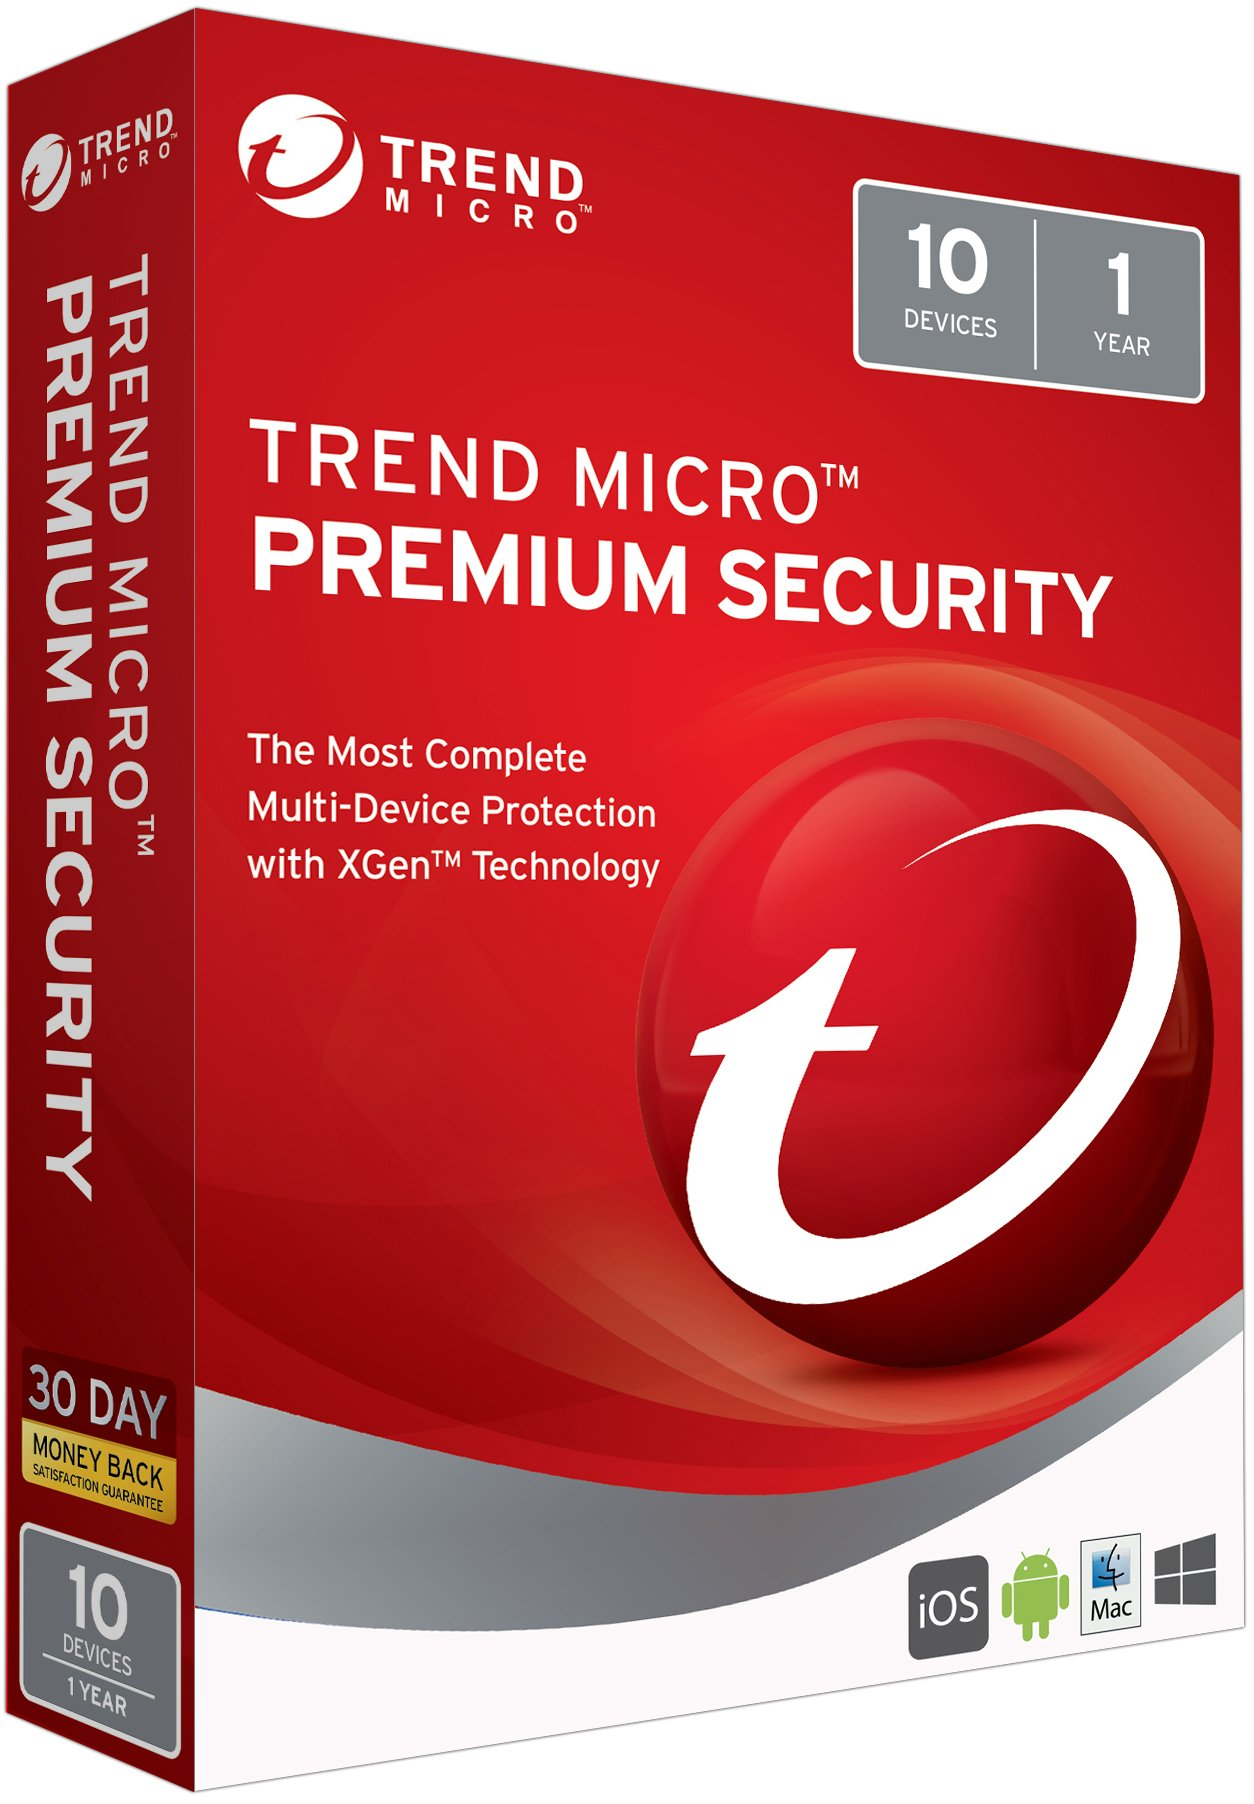 Trend Micro Max Premium Security 2018 10 User [Key Card] by Trend Micro